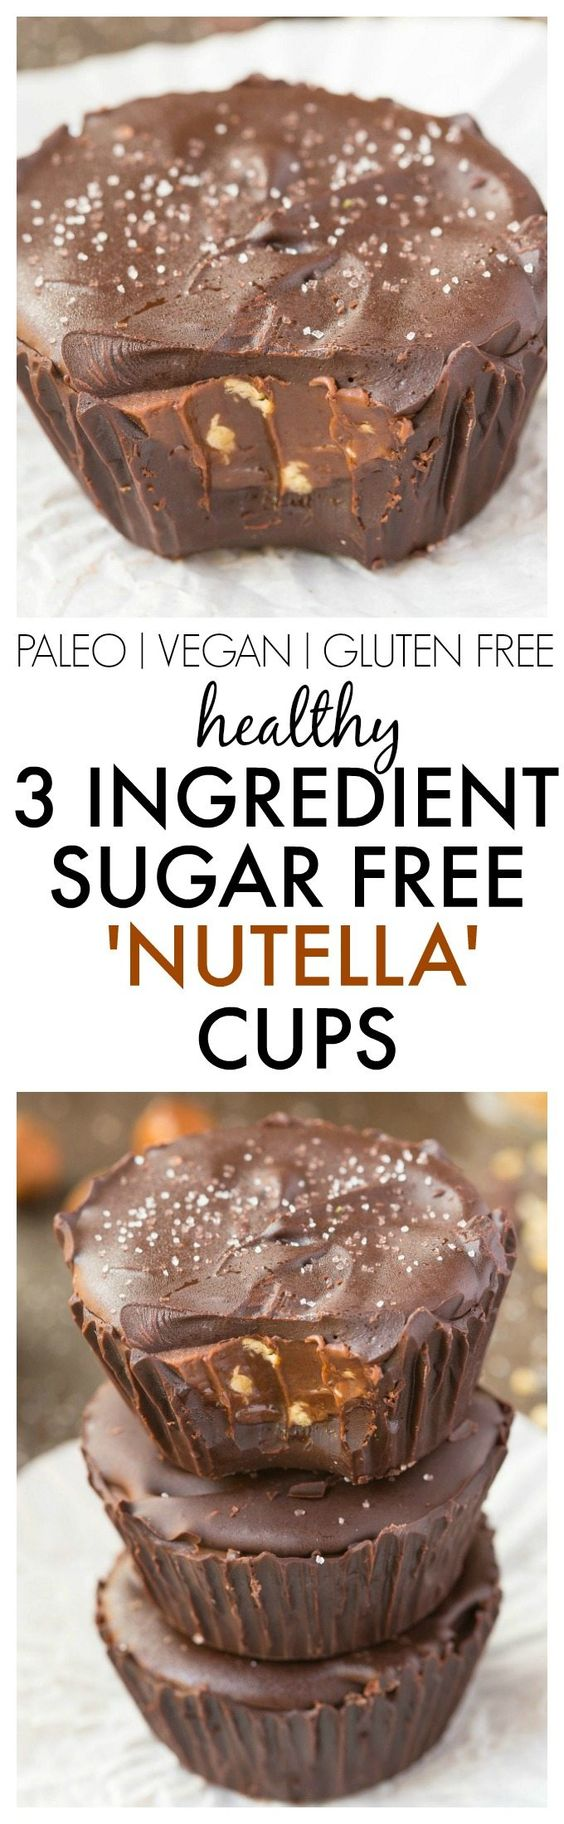 Healthy 3 Ingredient 'Nutella' Cups made with NO sugar, NO dairy and ridiculously easy AND delicious! {vegan, gluten free, paleo recipe}- thebigmansworld.com: